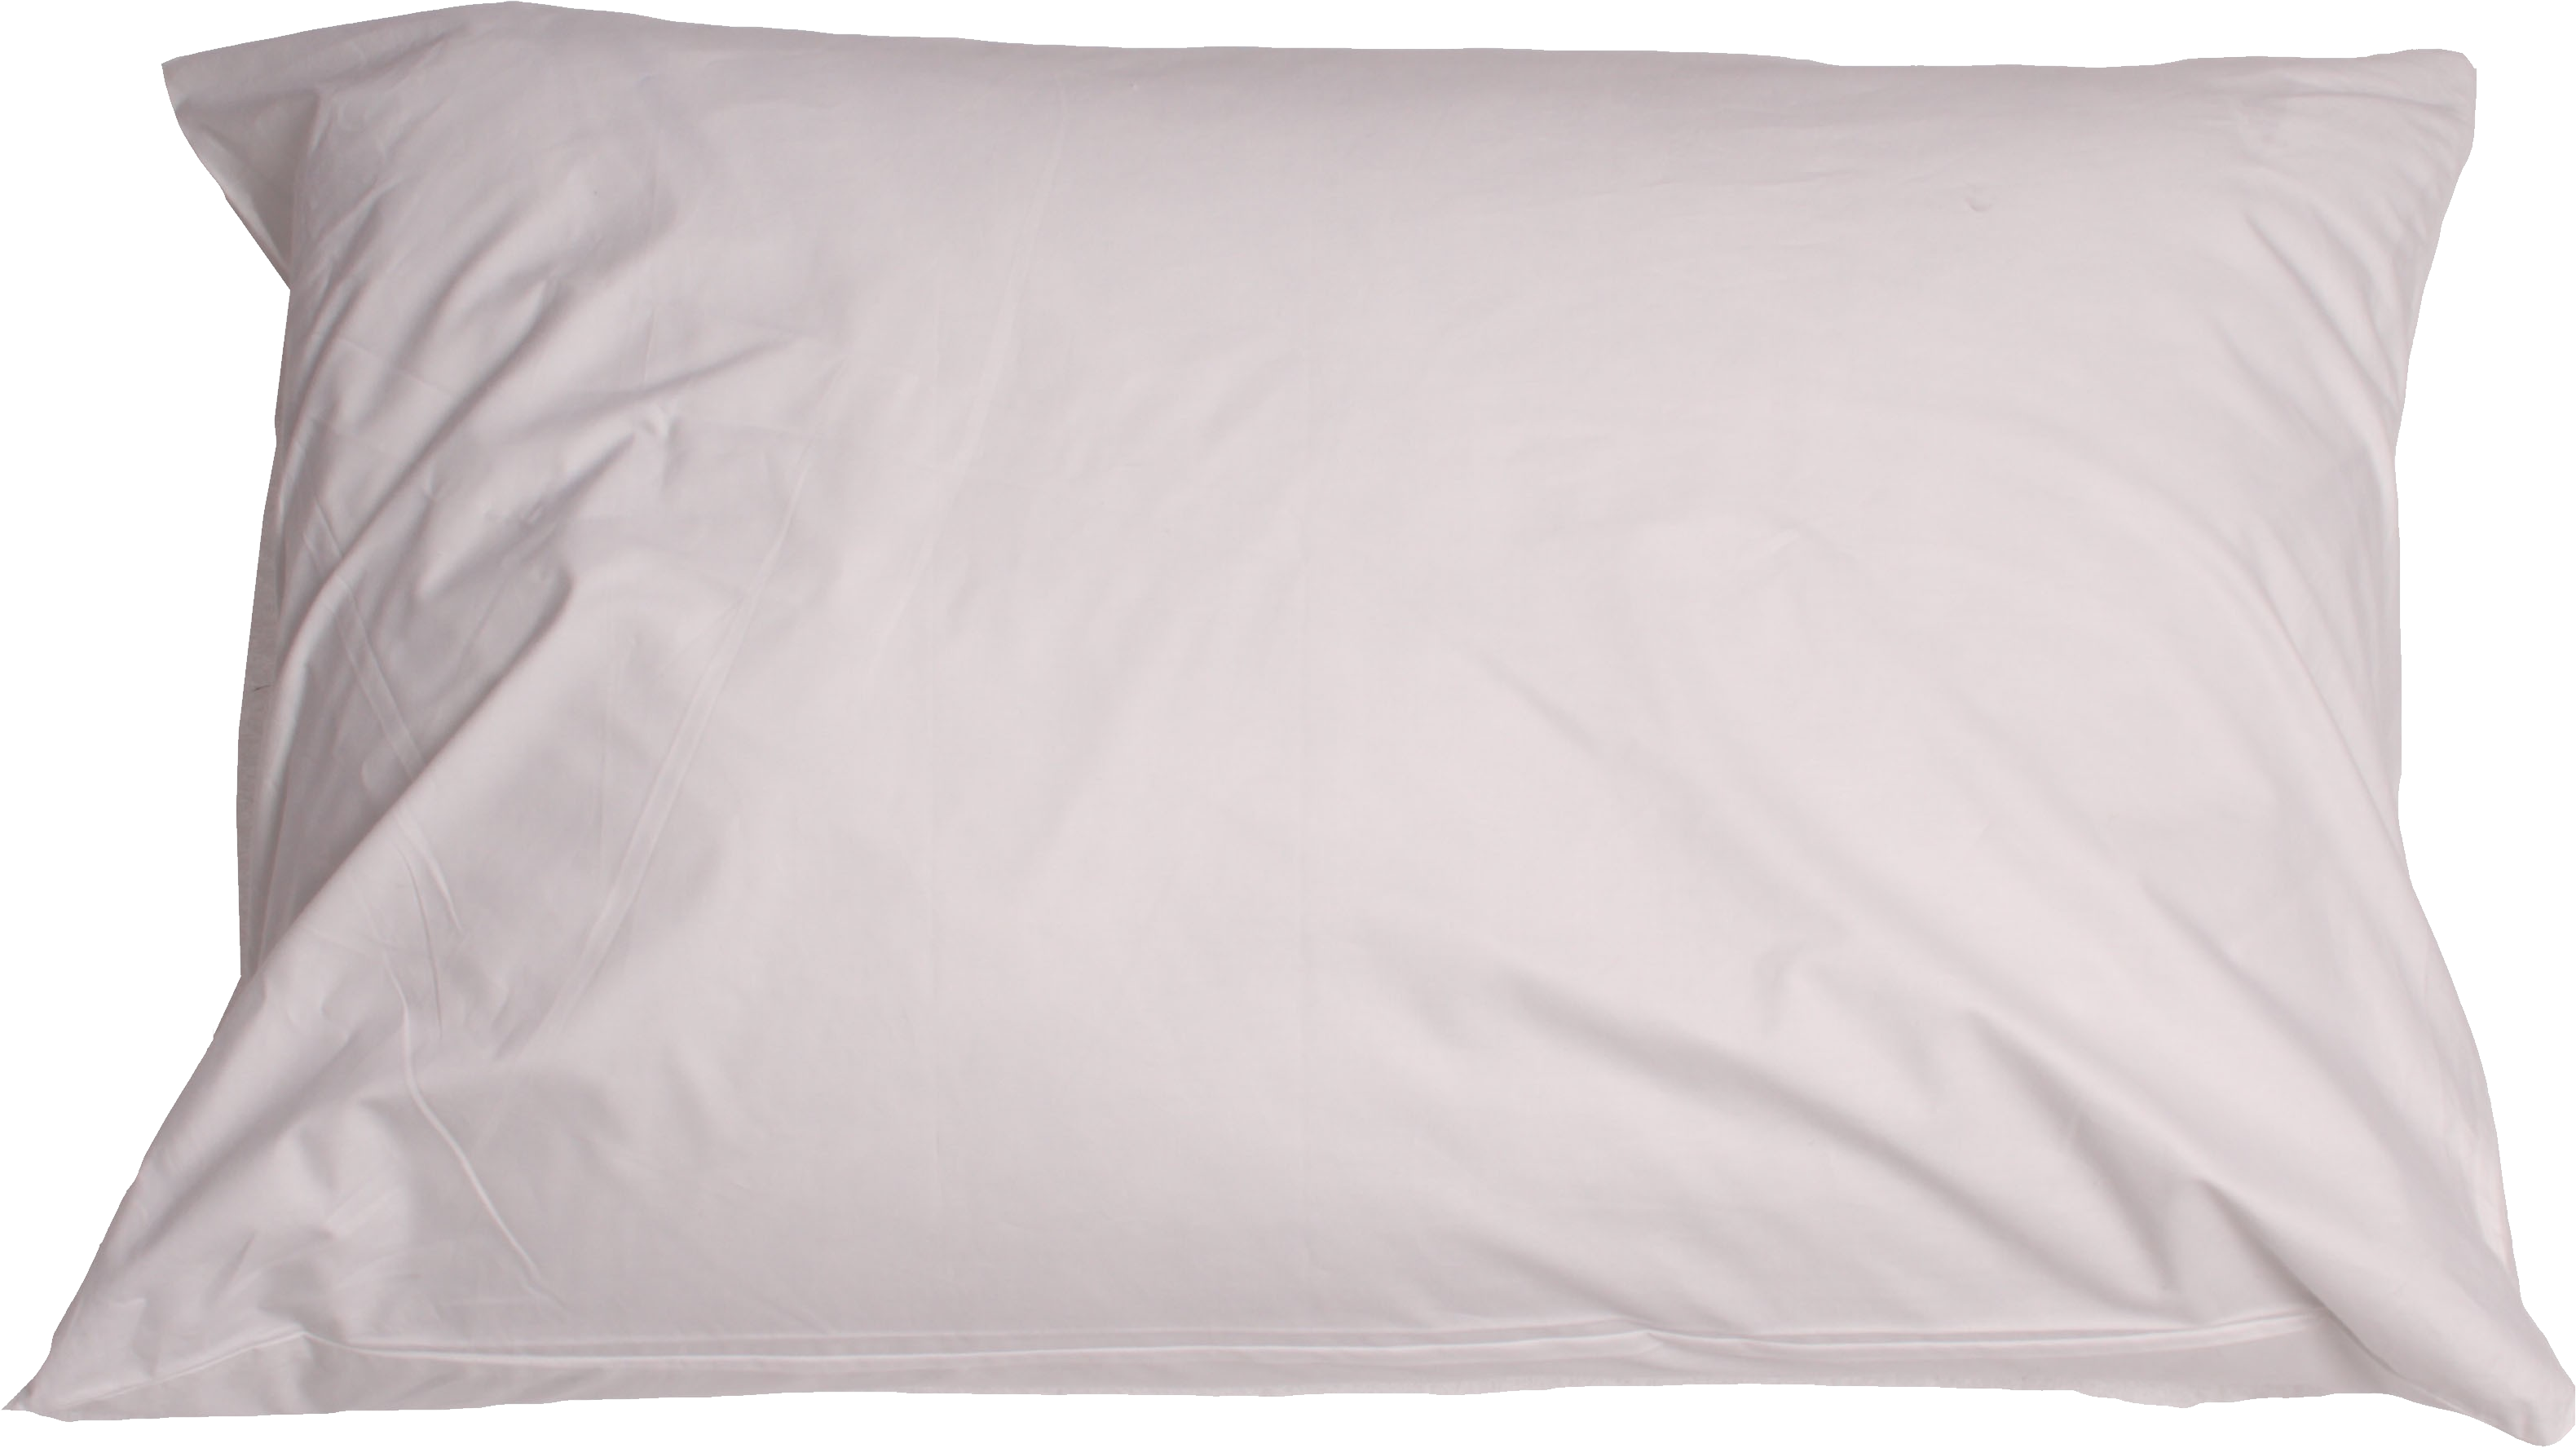 Bed clipart pilow Pillows Pillow Blanket Free #28447